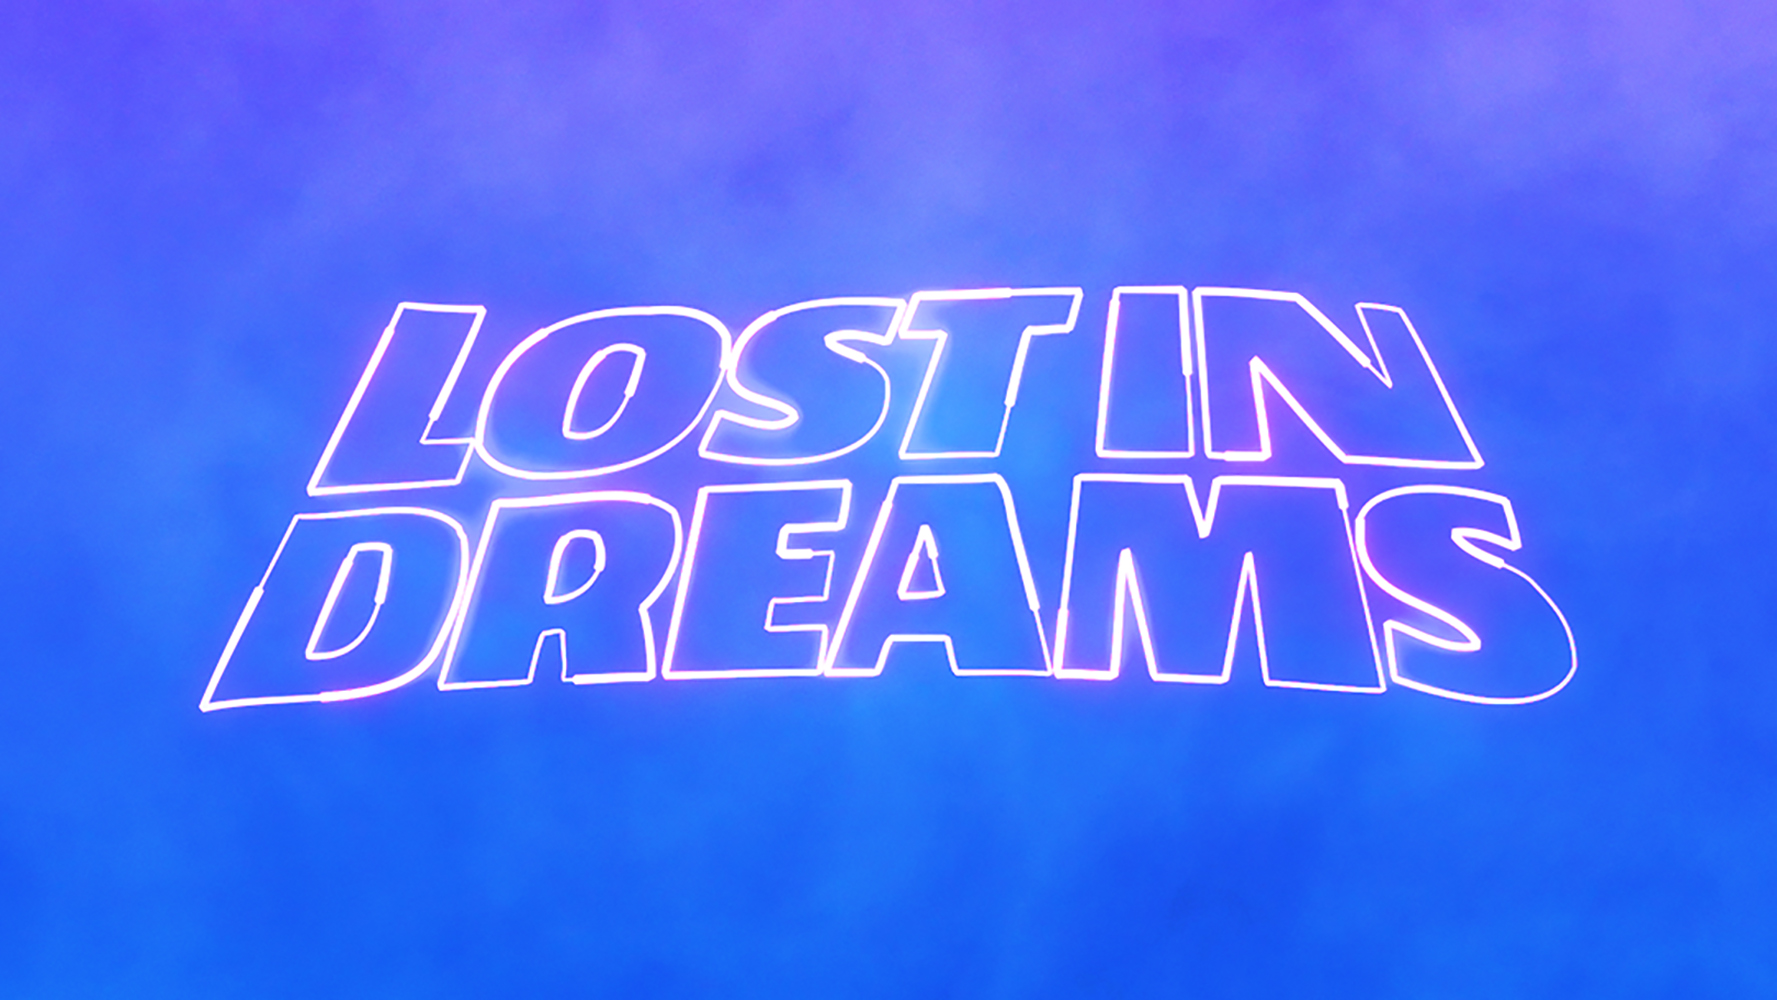 Insomniac Announces Launch Of New Brand 'Lost In Dreams' With Festival & Record Label!